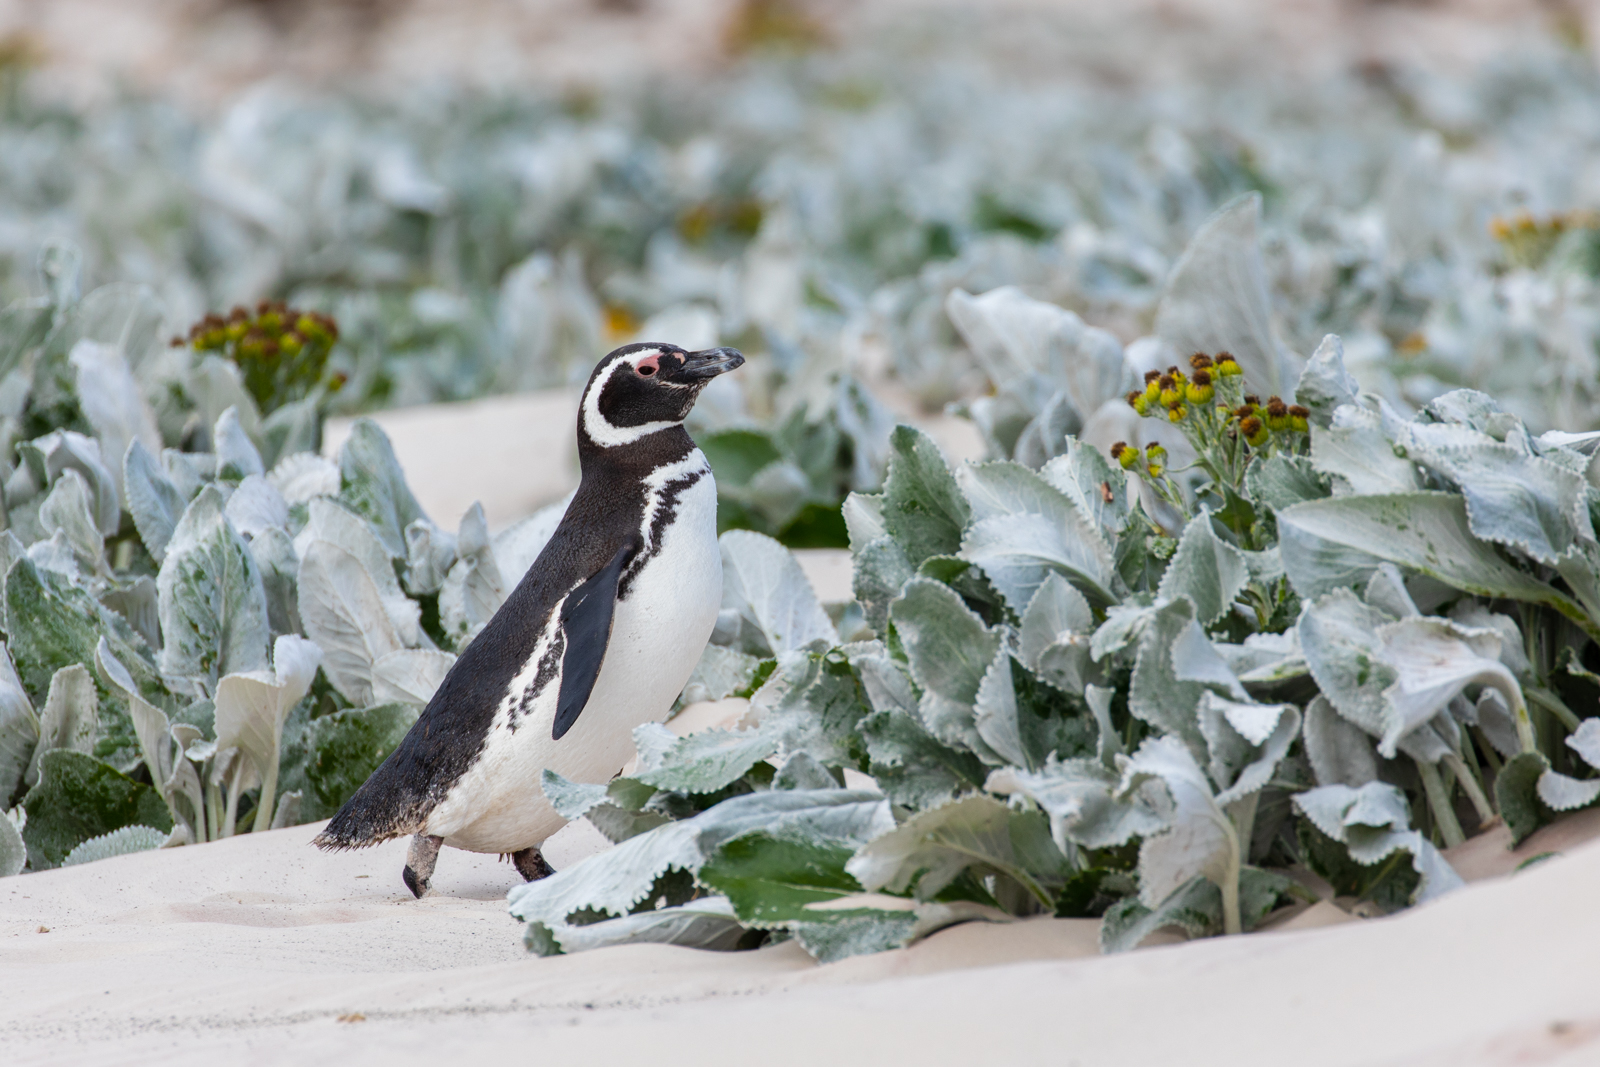 A Magellanic penguin among the wild flowers